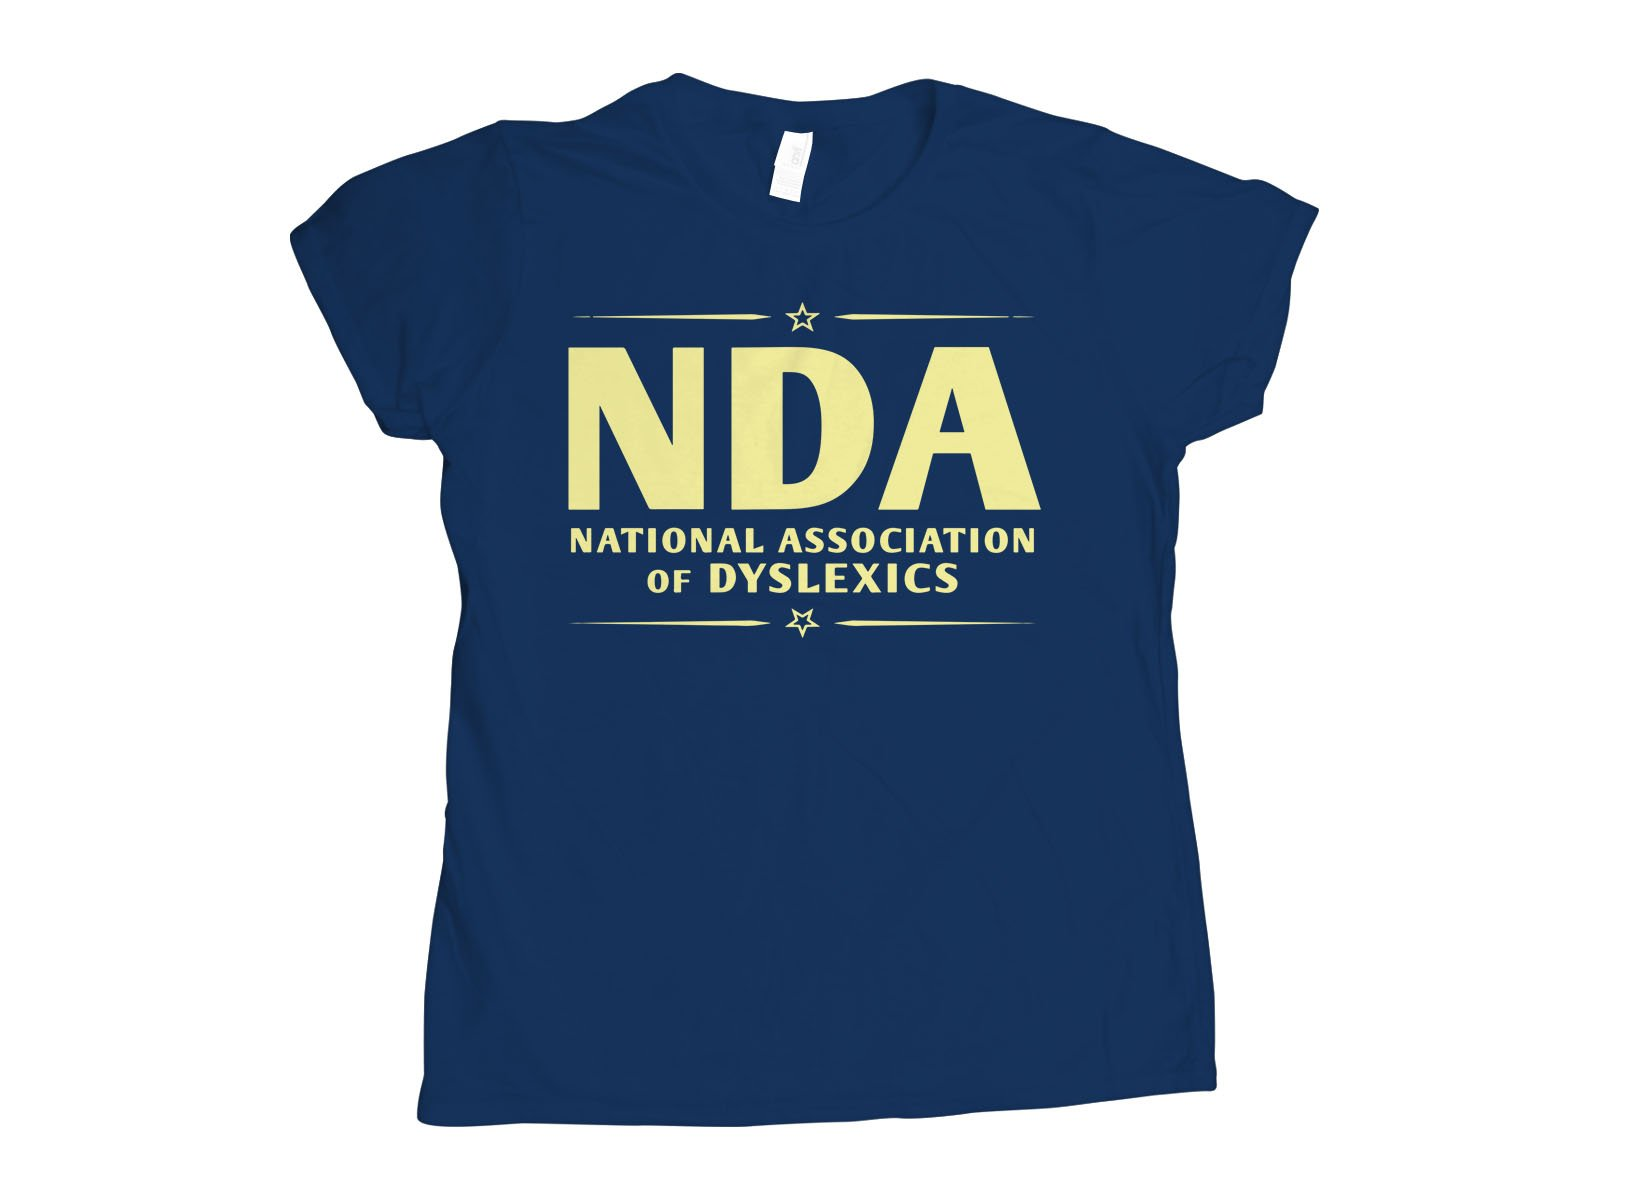 National Association of Dyslexics on Womens T-Shirt